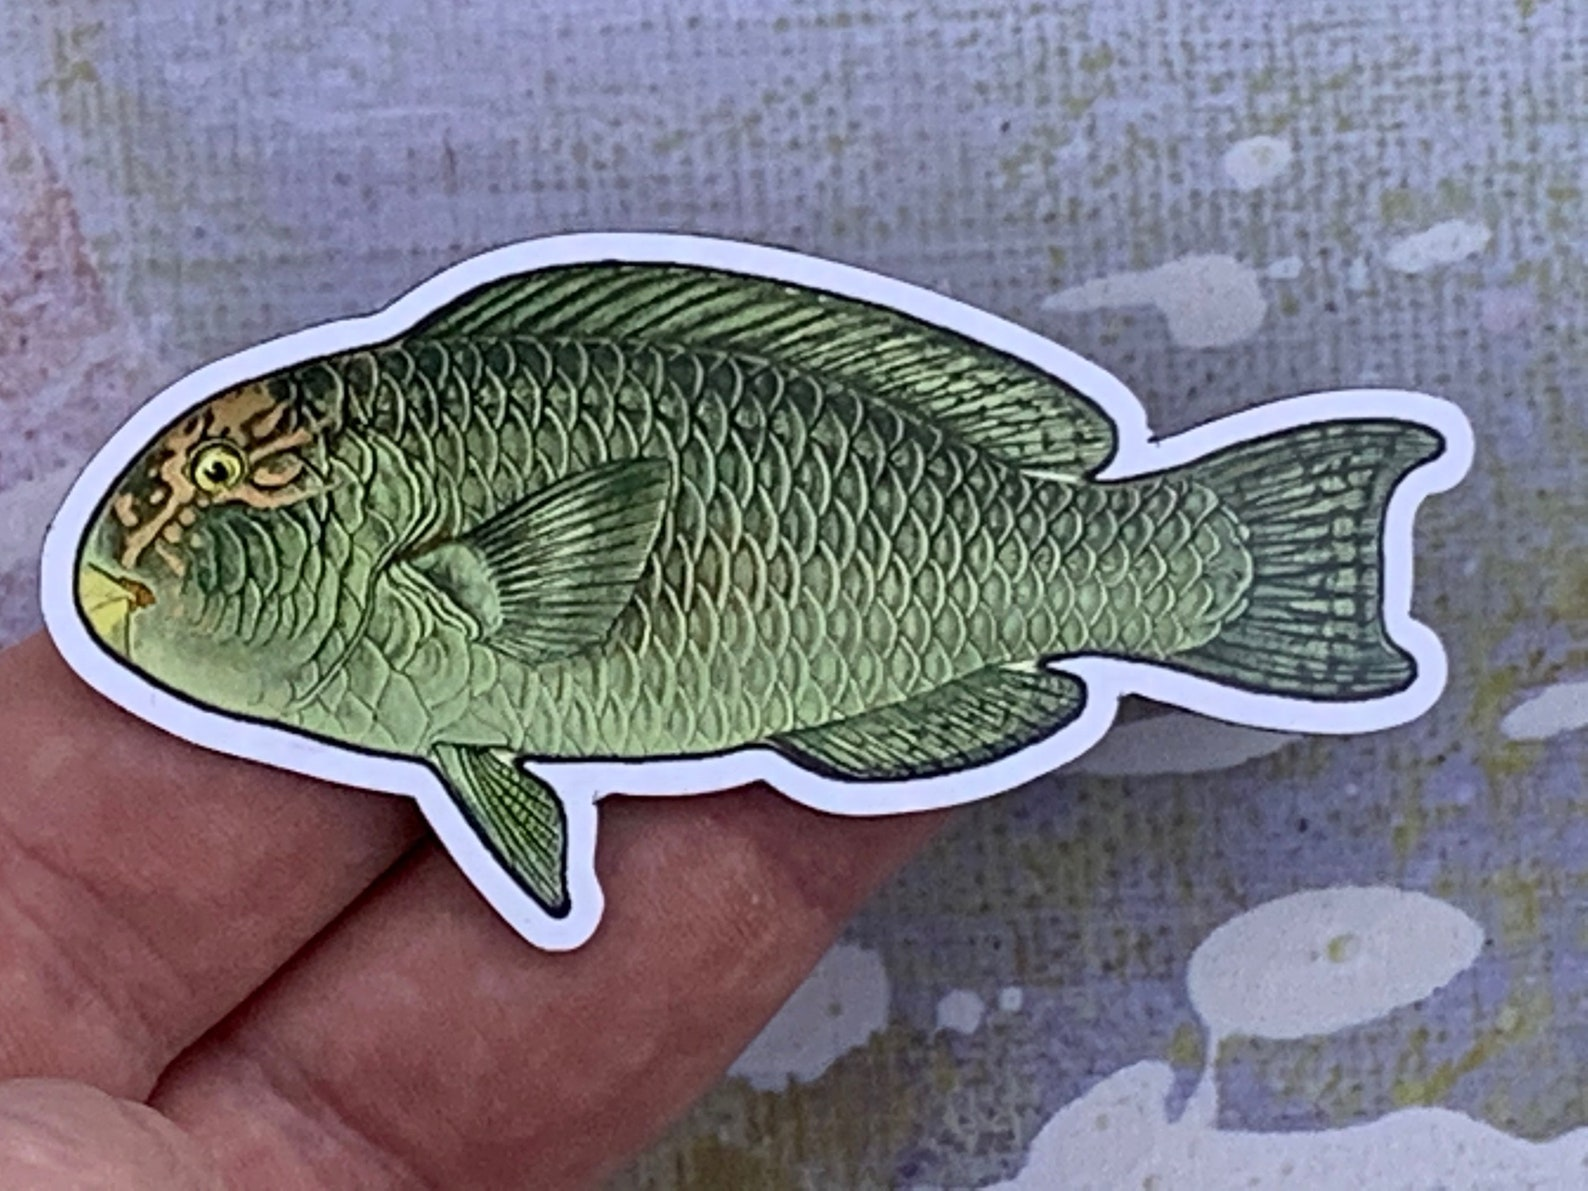 Photo of a reefcrest parrtofish magnet in someone's hand